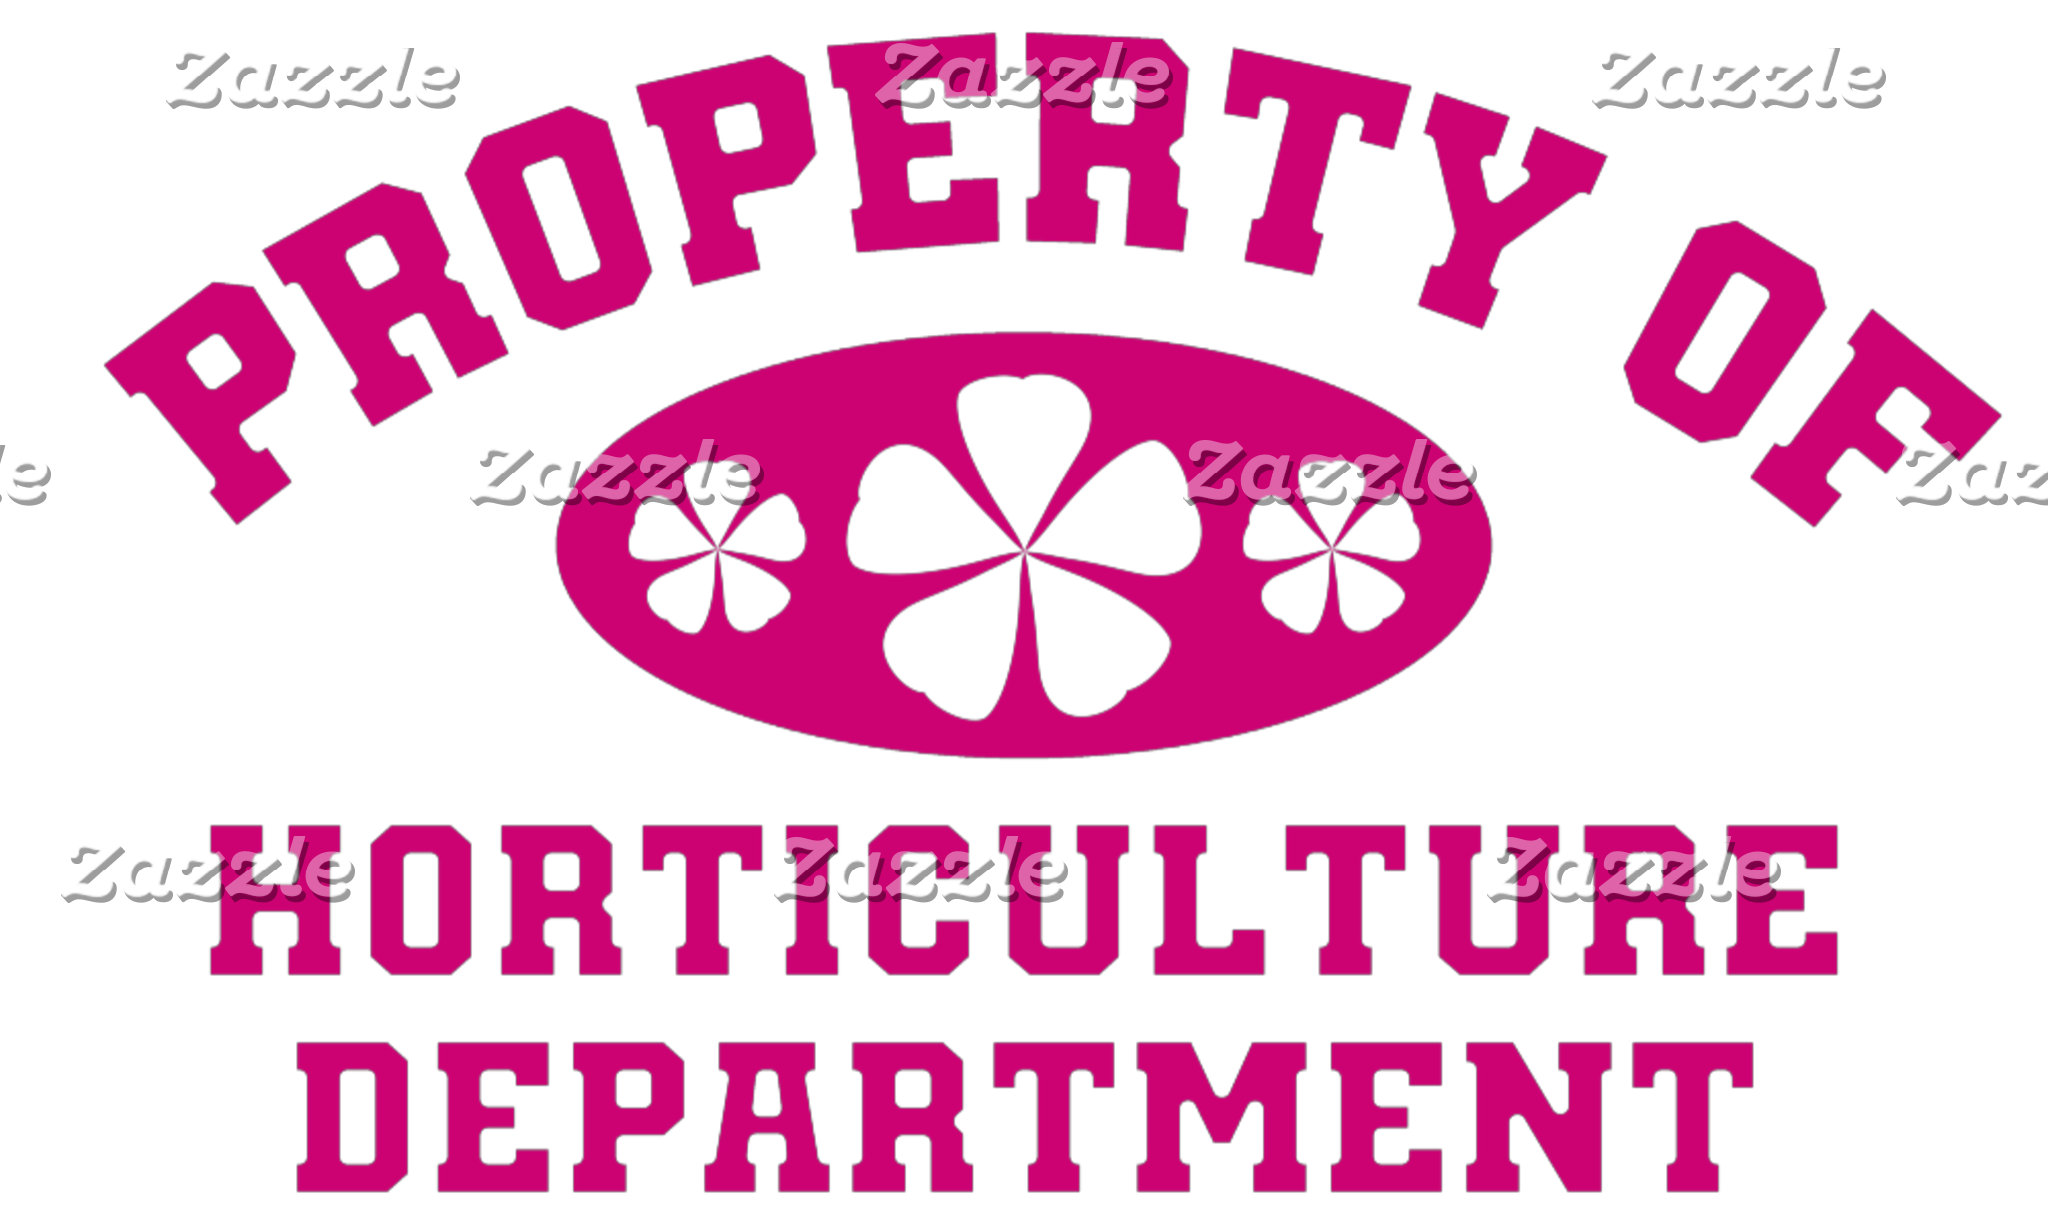 Agriculture Department